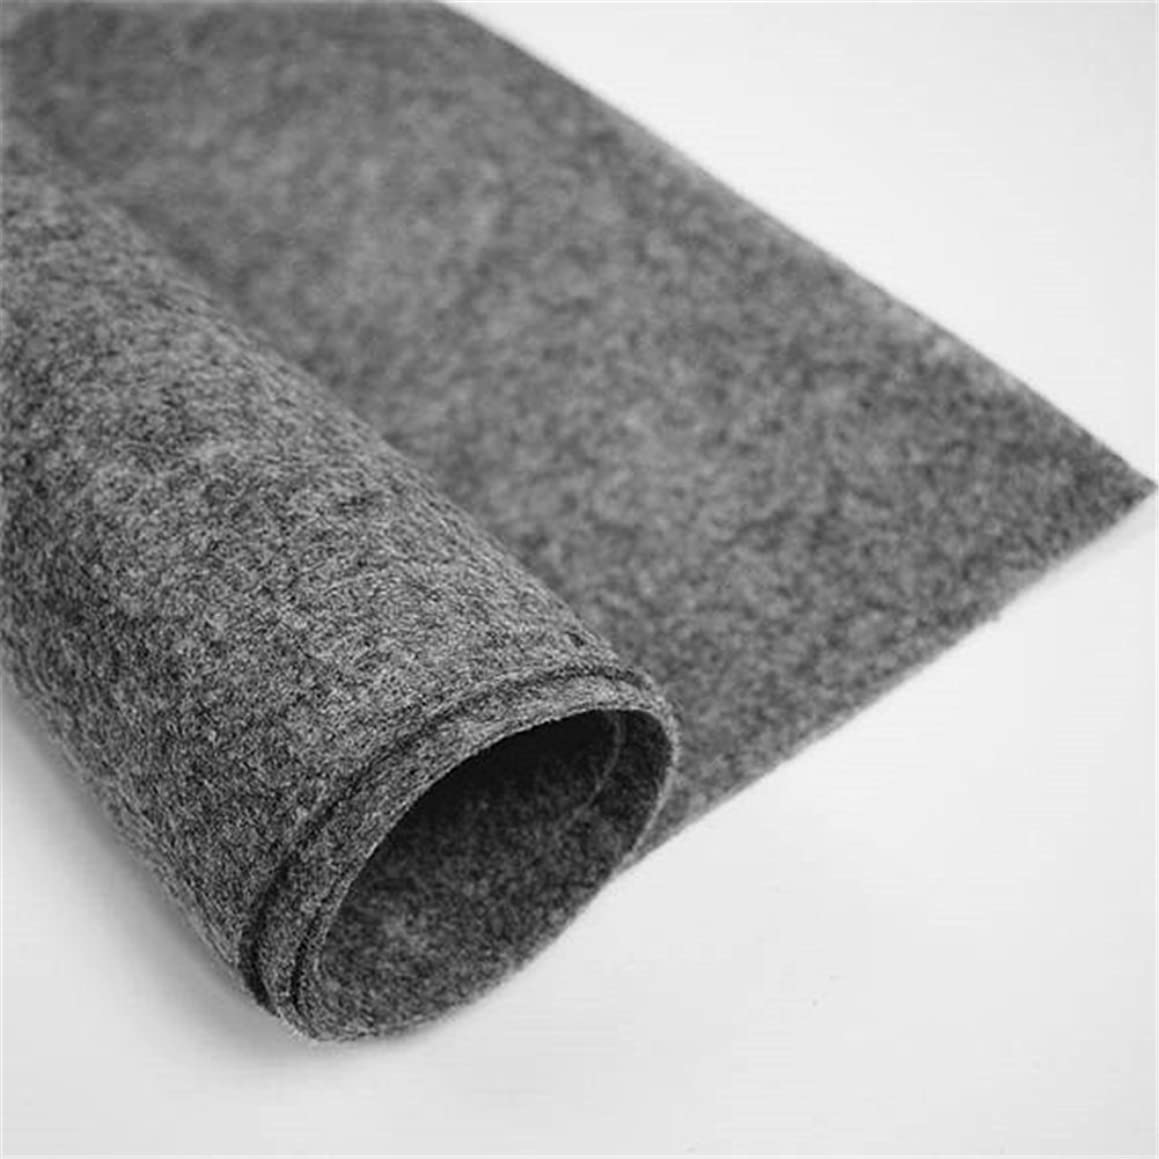 Felt Fabric 3 mm Thick, Dark Grey Craft Felt Cloth Non-Woven Wool Felt Fabric Sold by The Yard (3 mm Thick, Dark Grey)